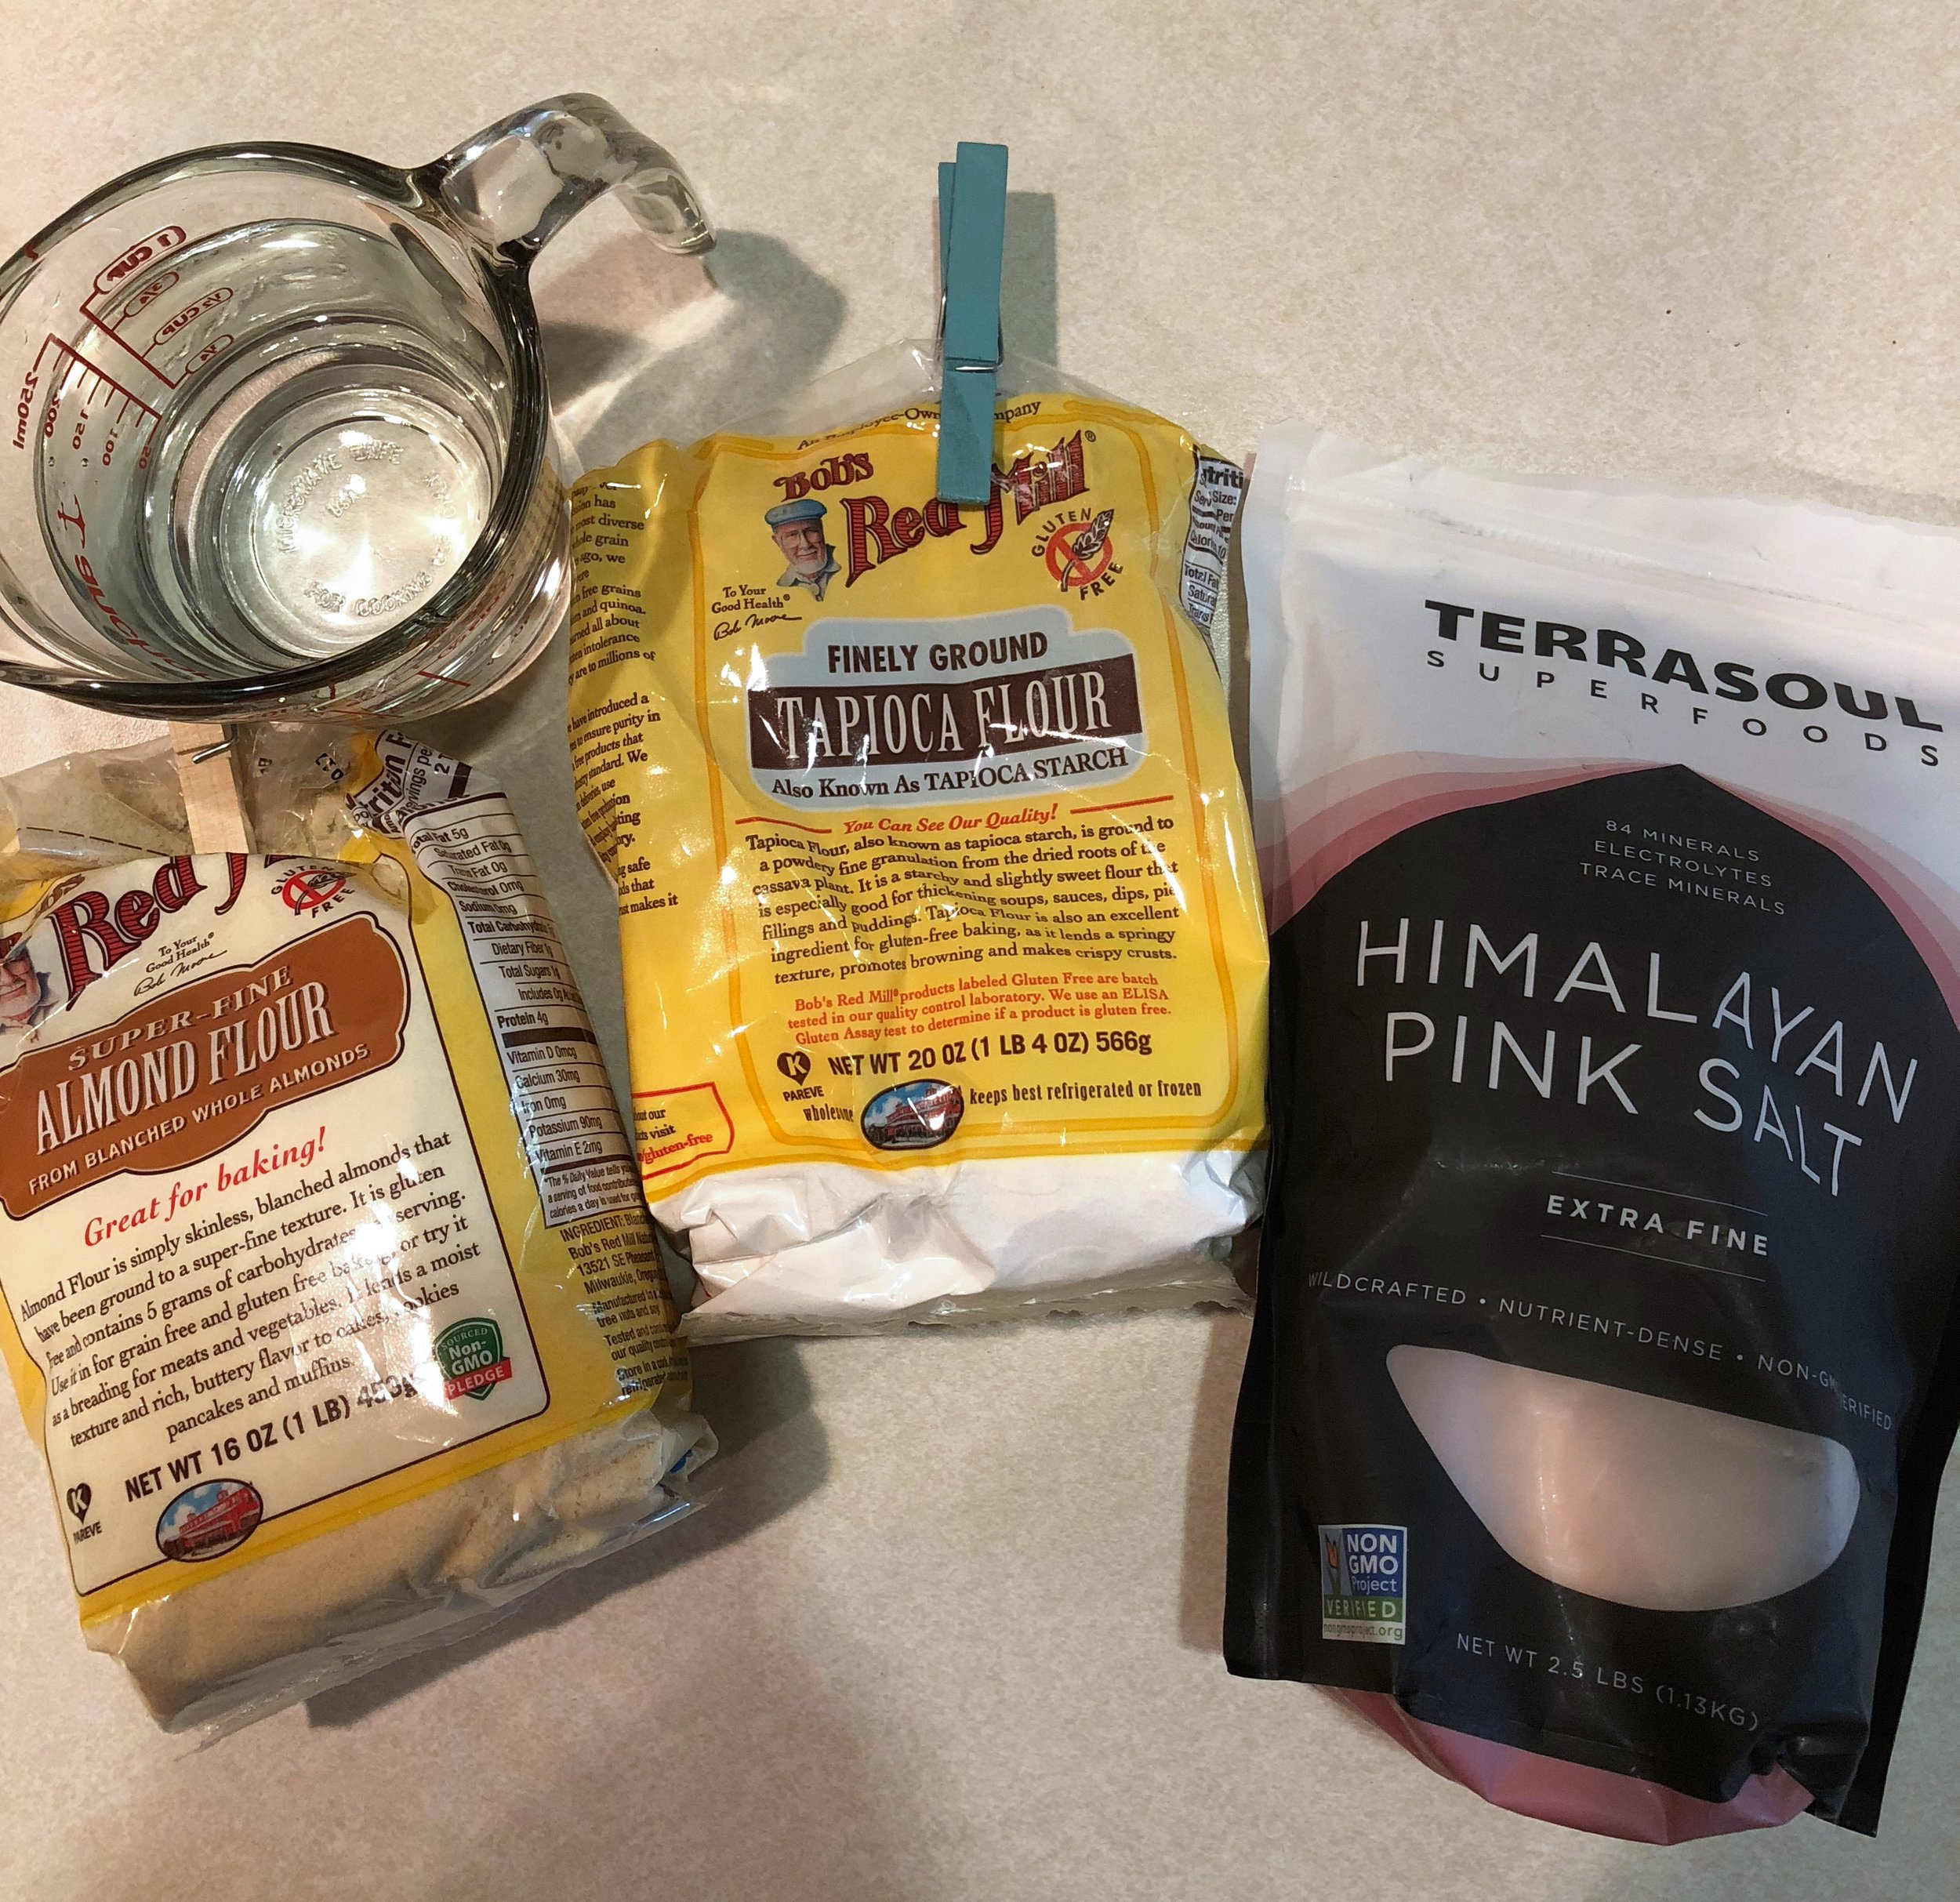 I really like using the Bob's Red Mill Almond Flour and Tapioca Flour. I also use Himalayan Pink Salt but you can use regular salt.